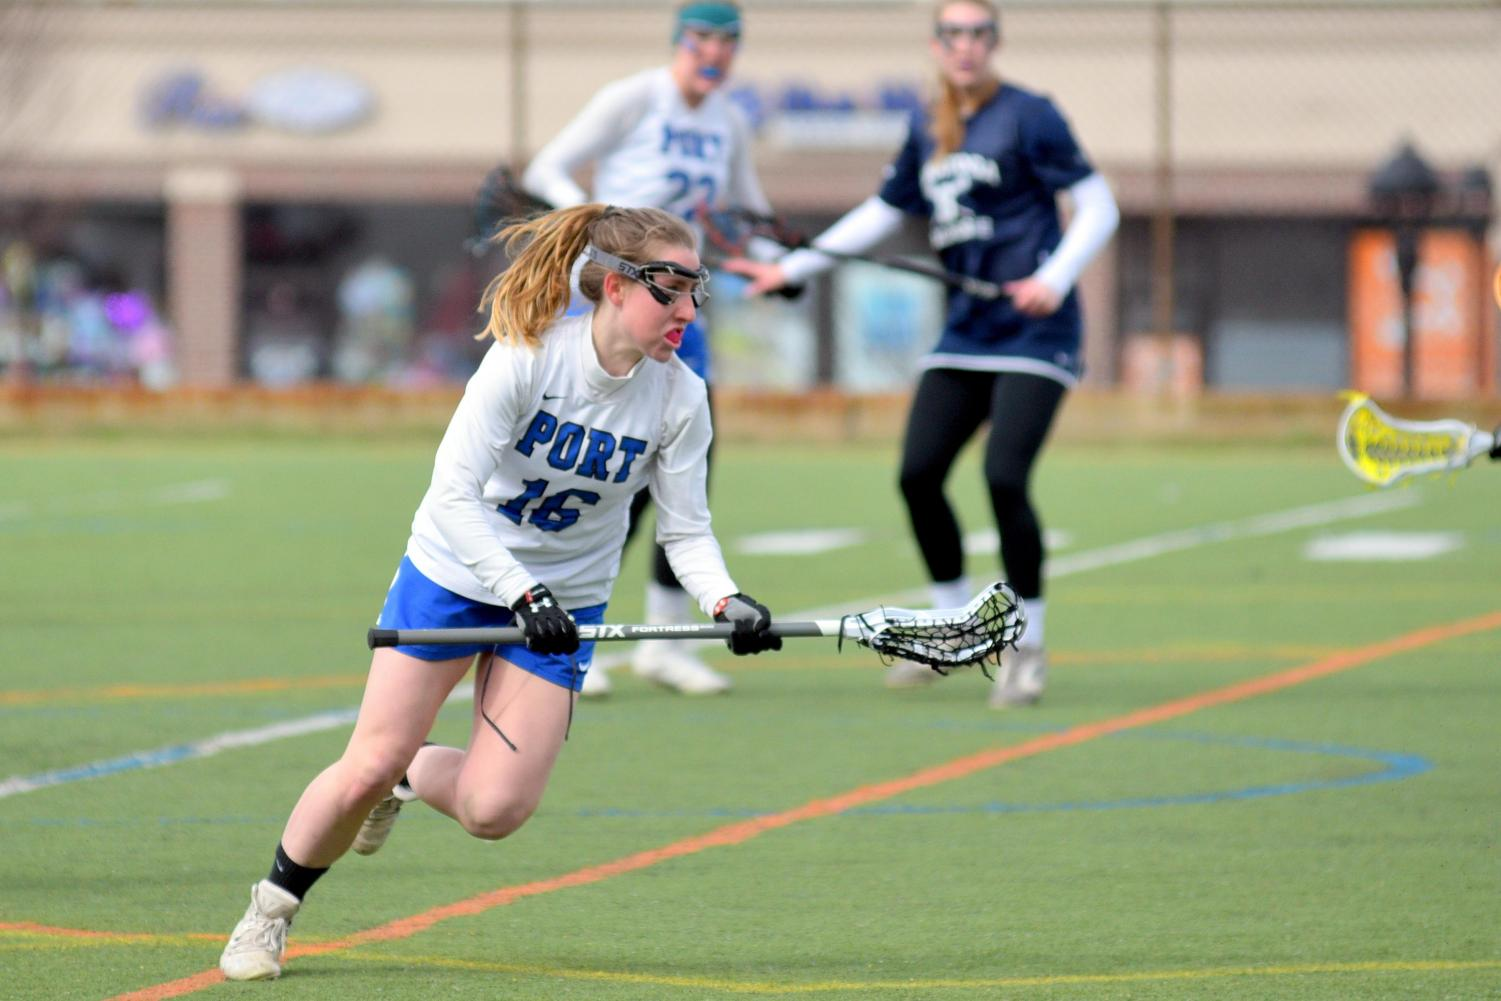 Senior Ali Hoffman looks to advance the ball in a home game against Saratoga Springs on April 7.  The Vikings went on to win the game 12-9.